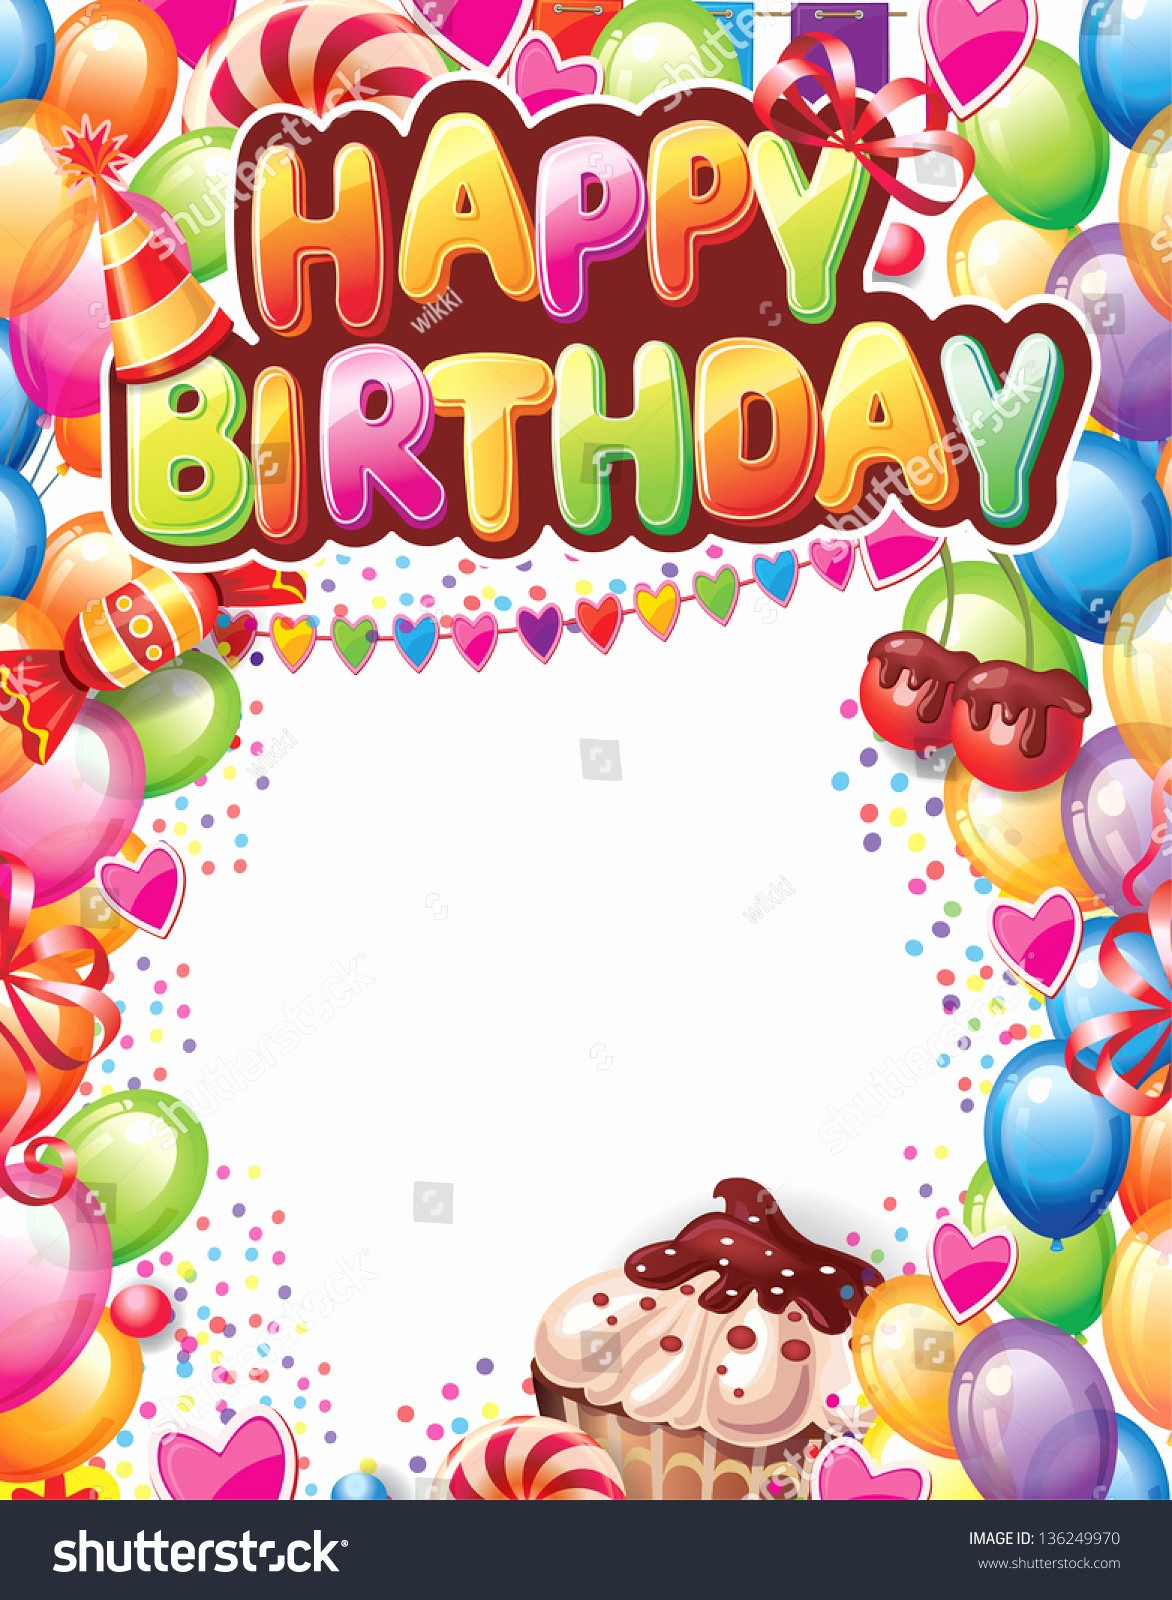 Birthday Card Template with Photo New Template Happy Birthday Card Stock Vector